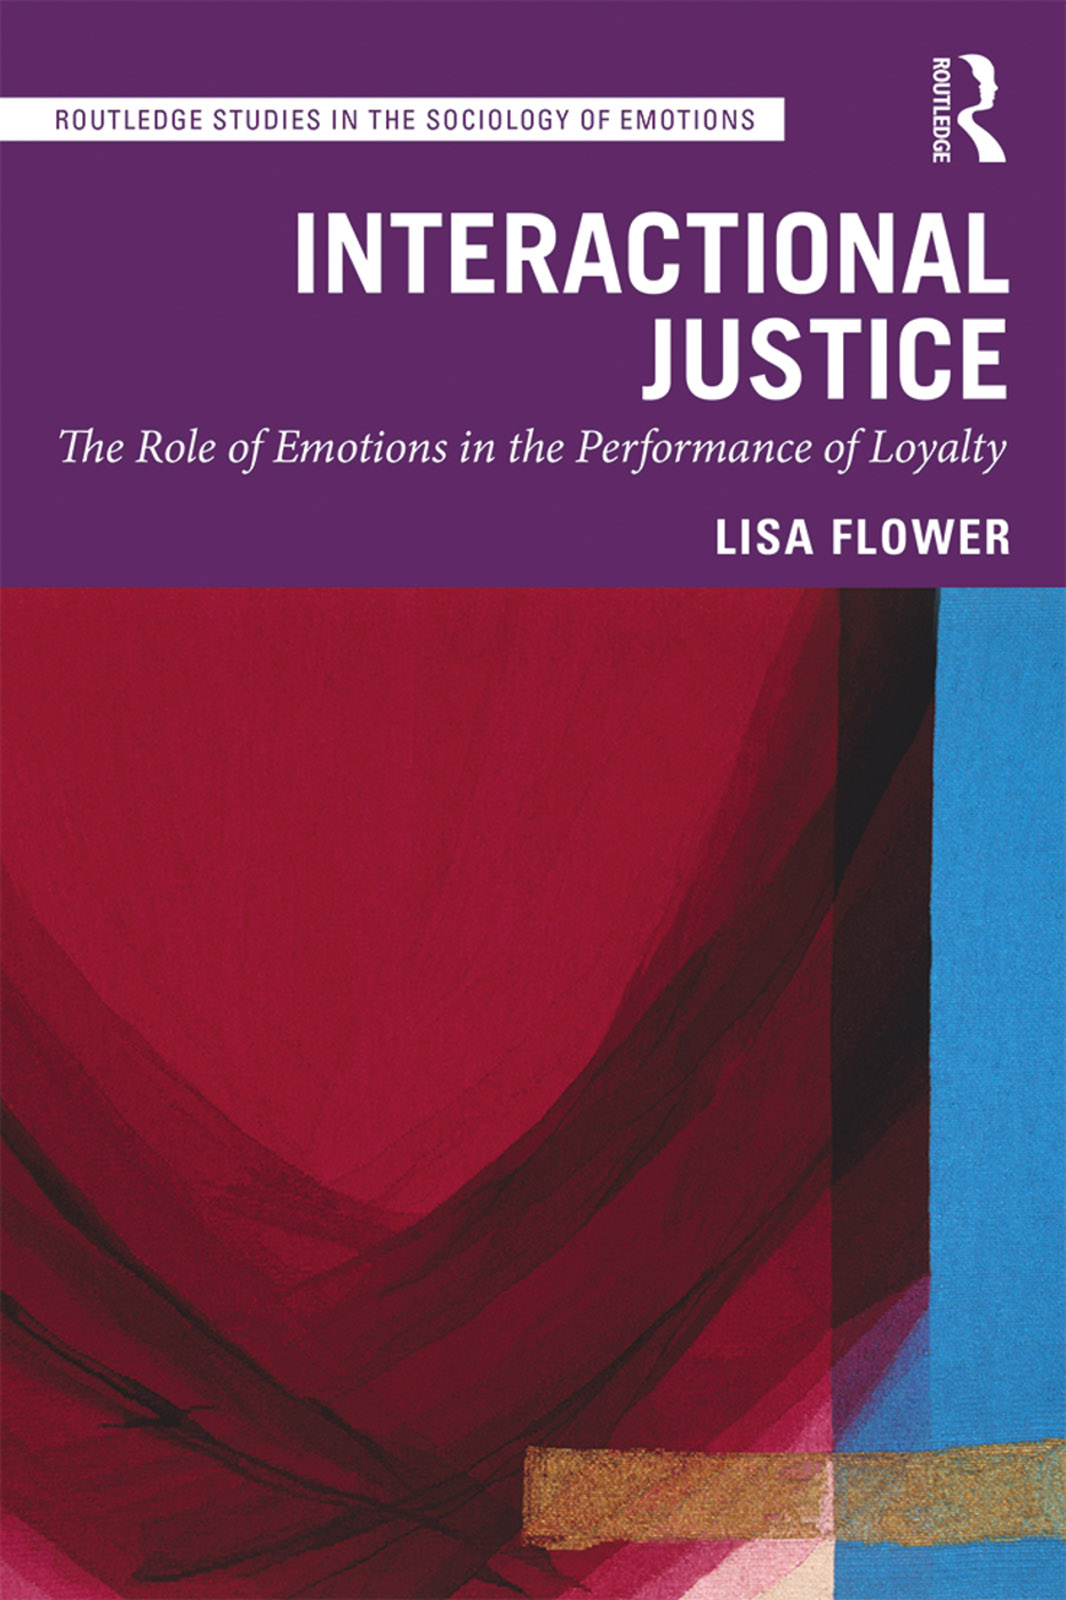 Interactional Justice: The Role of Emotions in the Performance of Loyalty book cover